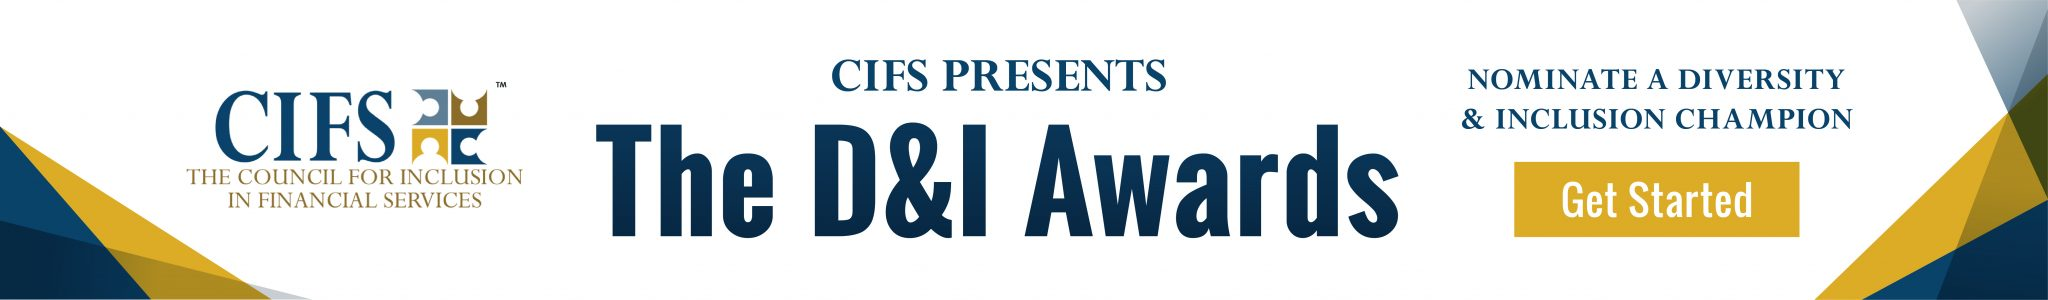 CIFS Presents the D&I Awards - Nominate a Diversity and Inclusion Champion